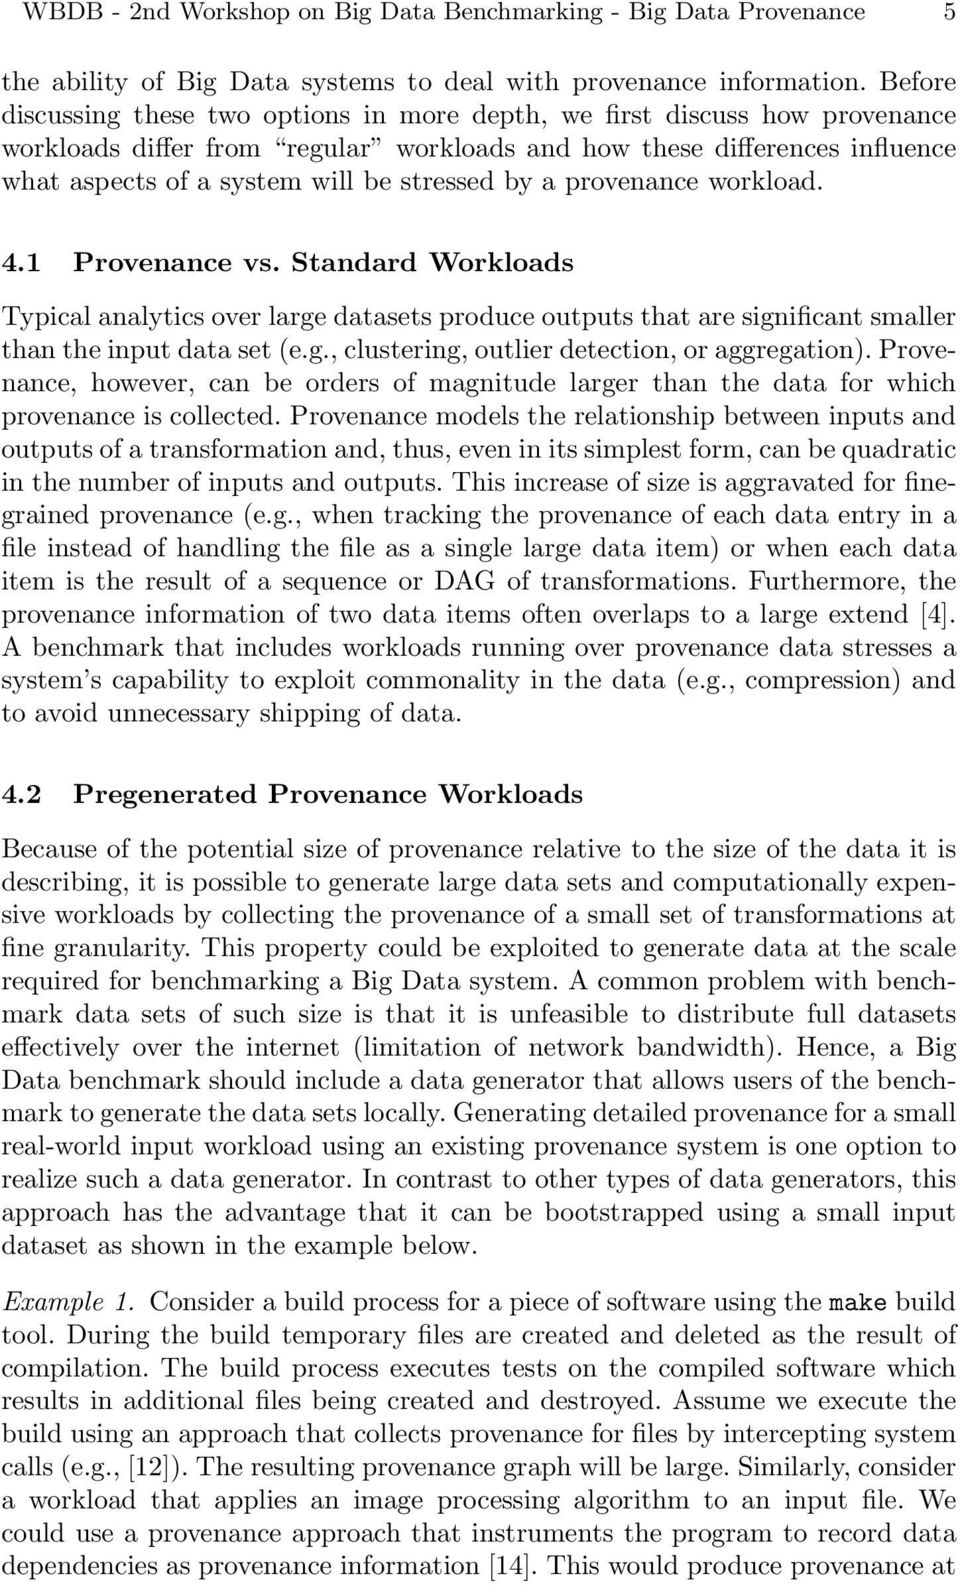 stressed by a provenance workload. 4.1 Provenance vs. Standard Workloads Typical analytics over large datasets produce outputs that are significant smaller than the input data set (e.g., clustering, outlier detection, or aggregation).